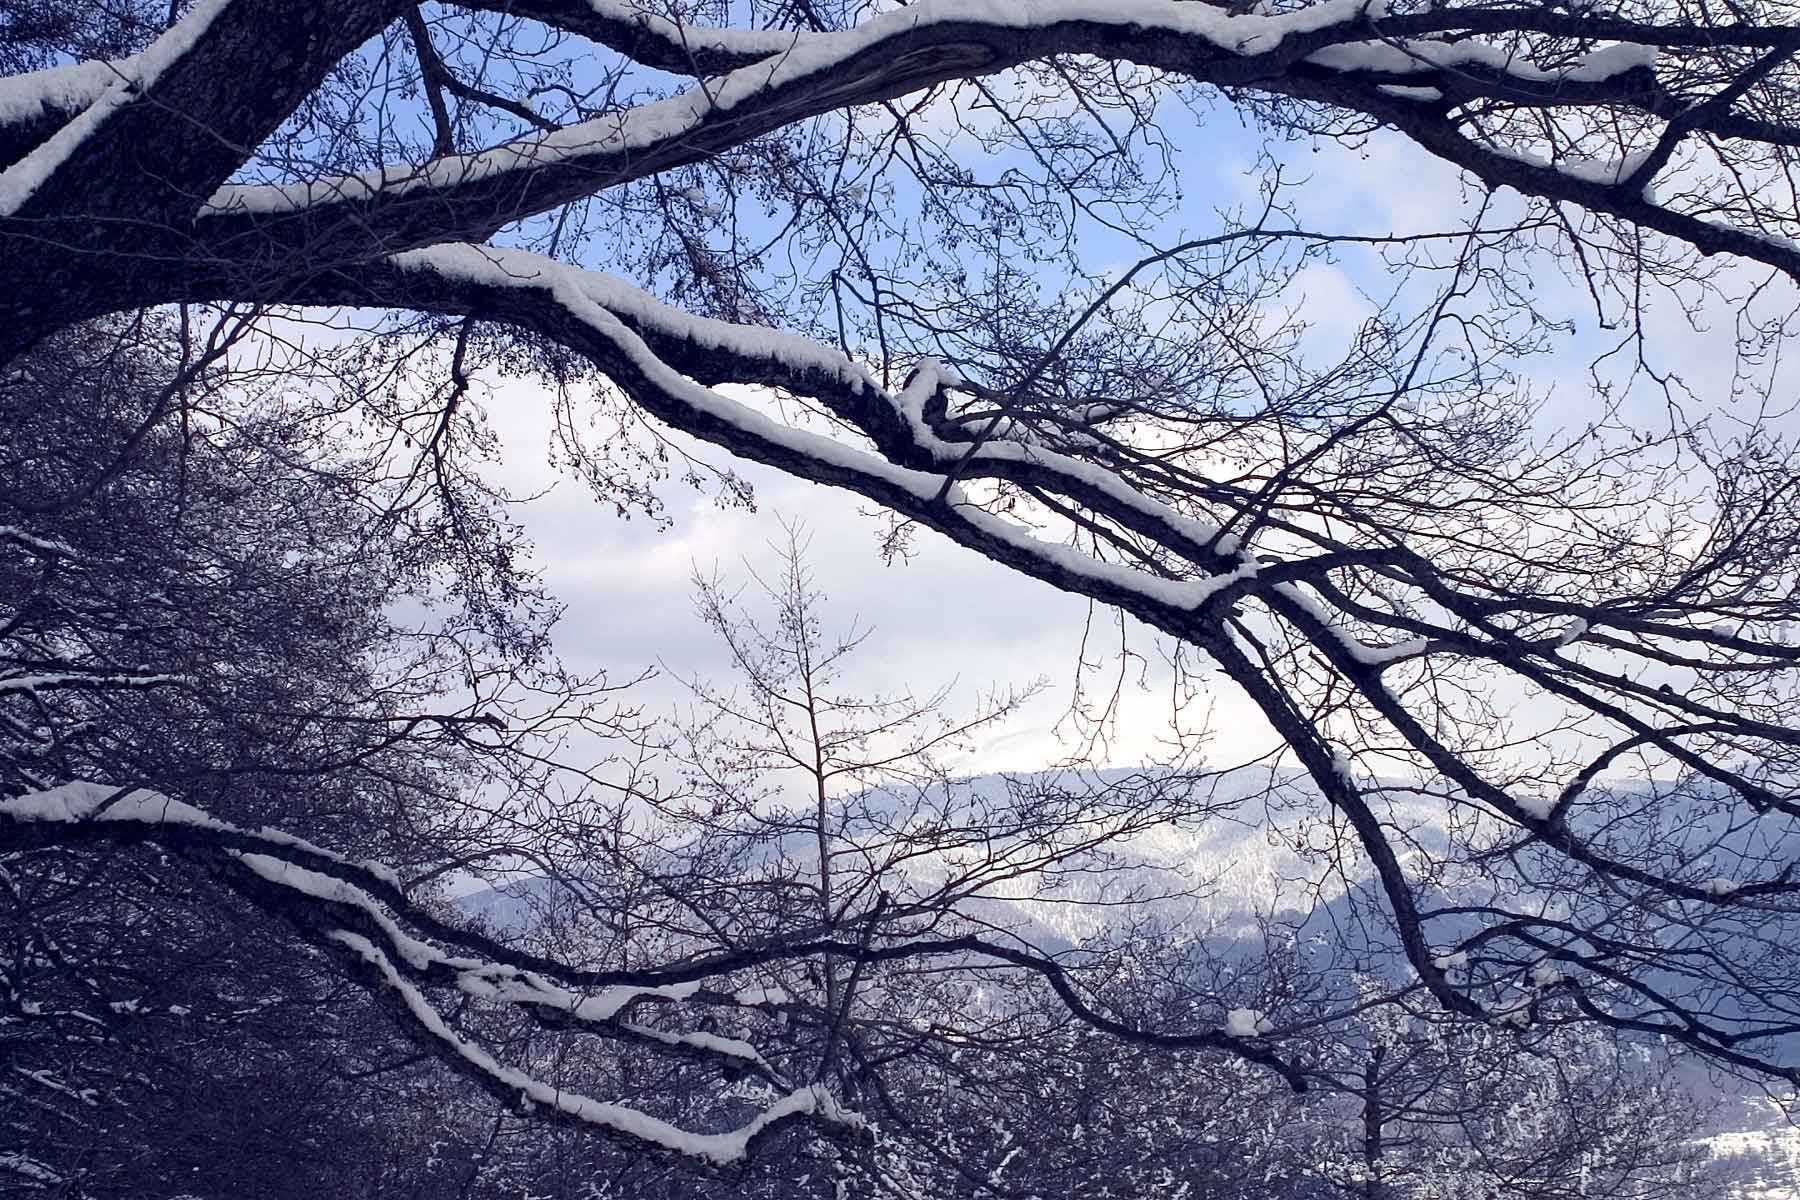 Tips for using your camera in cold weather